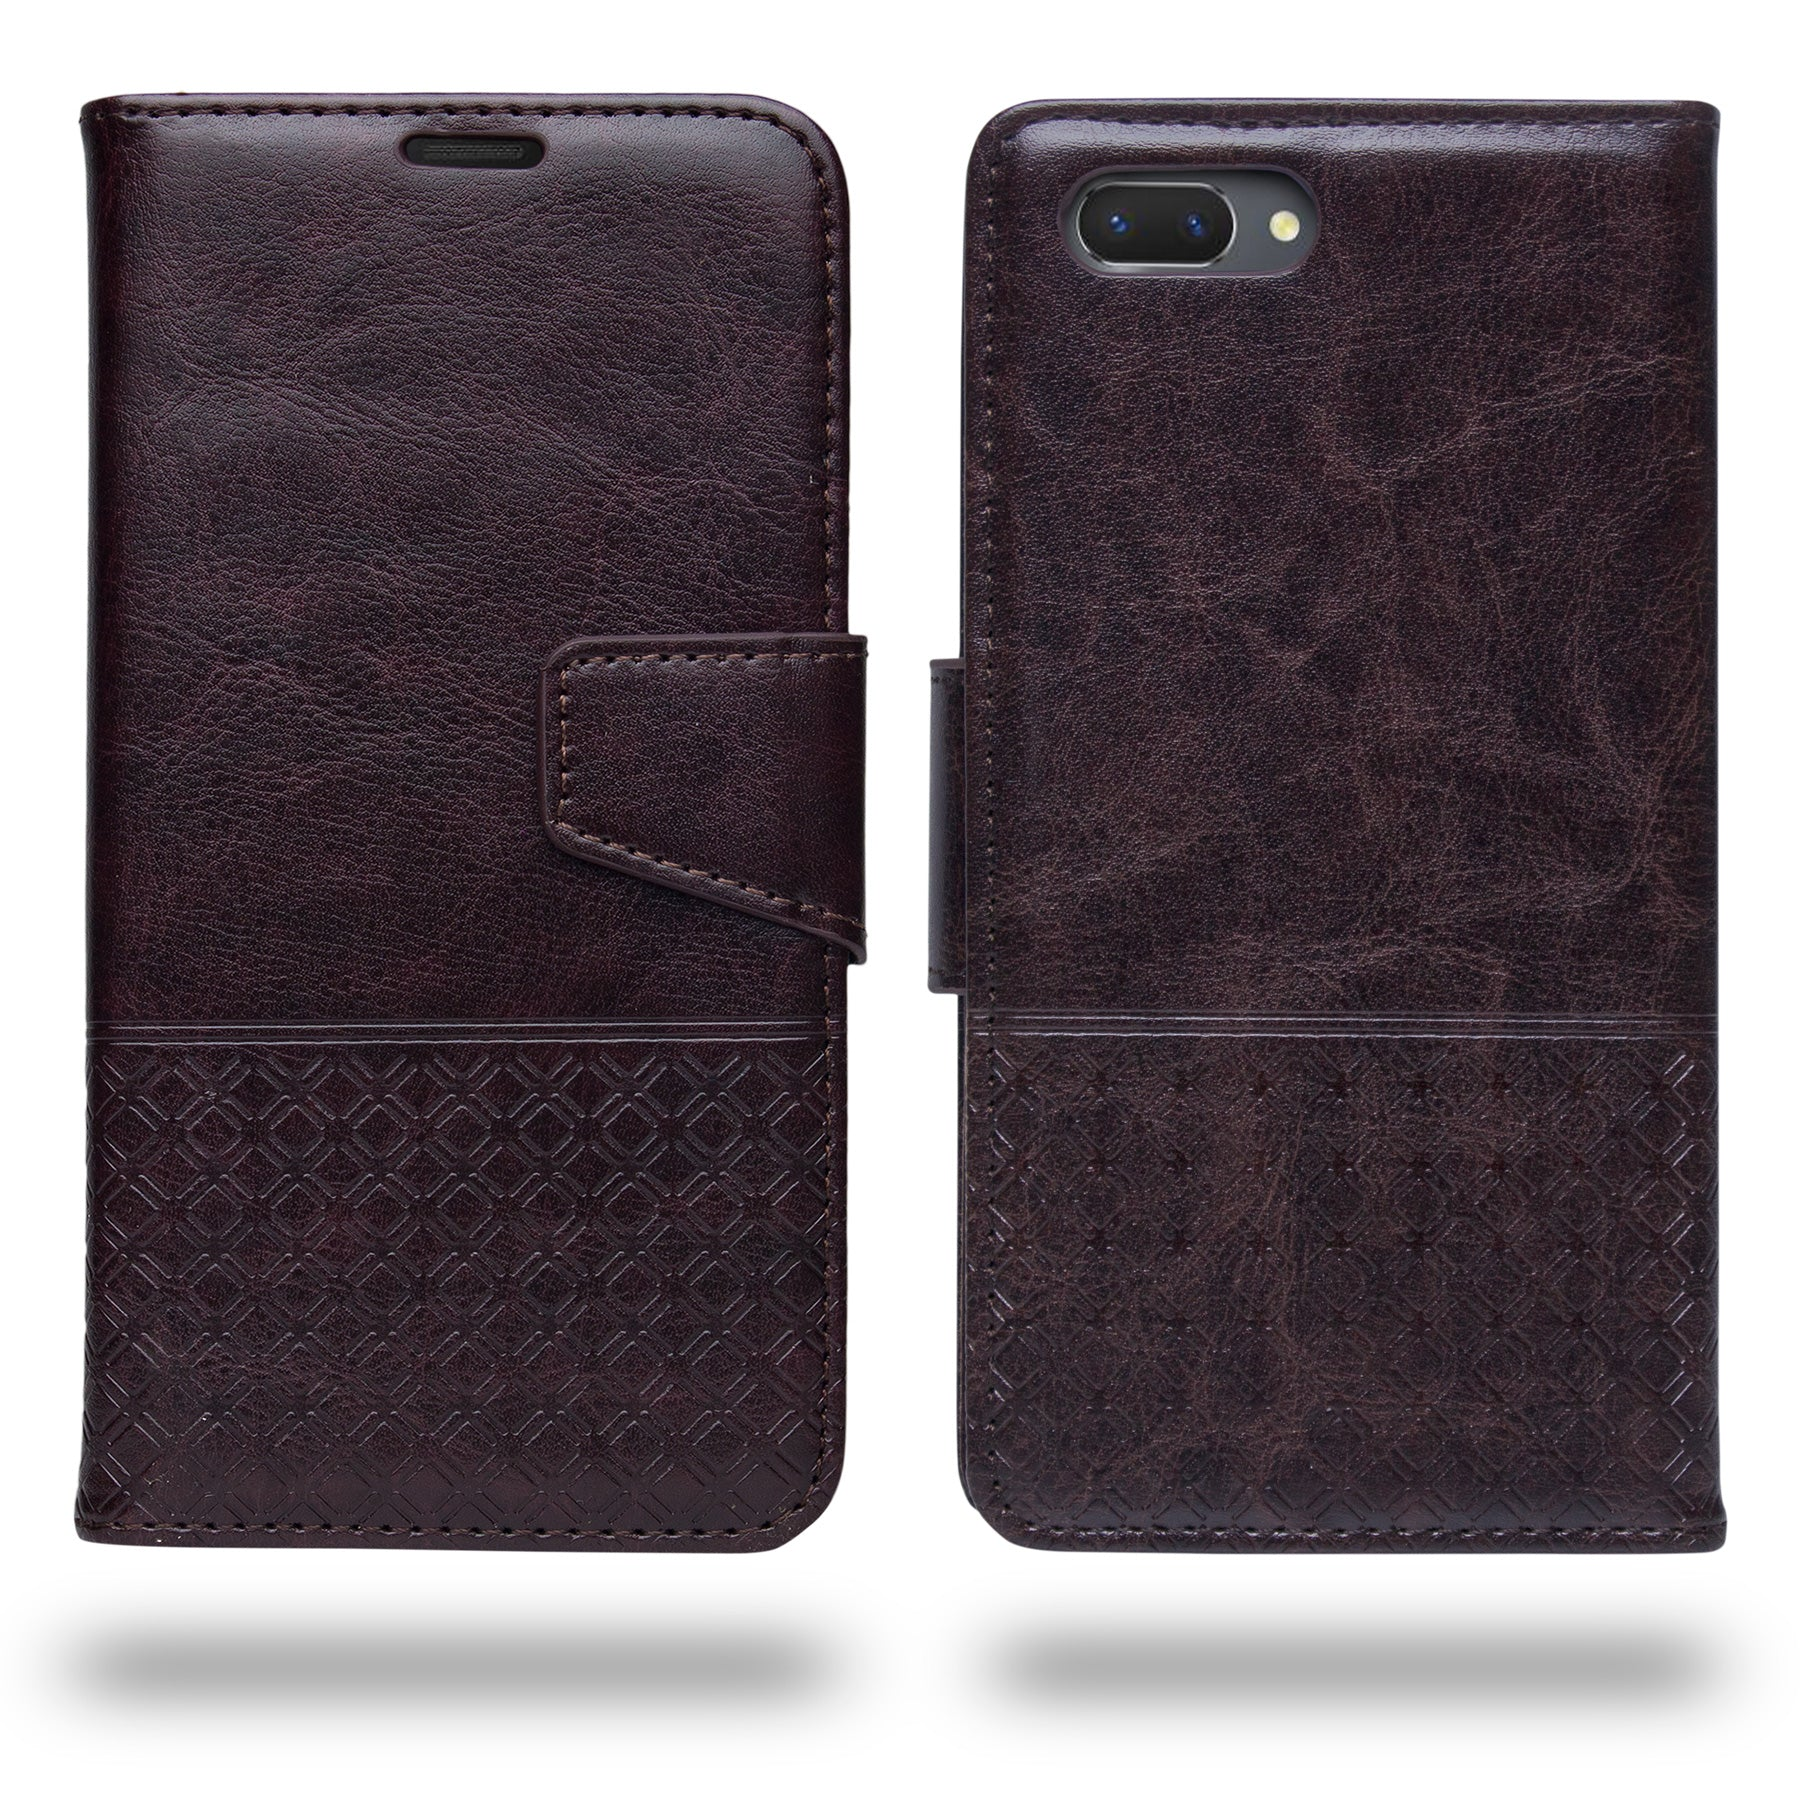 Ceego Luxuria Compact Wallet Flip Cover for RealMe 2 (Chestnut Brown)